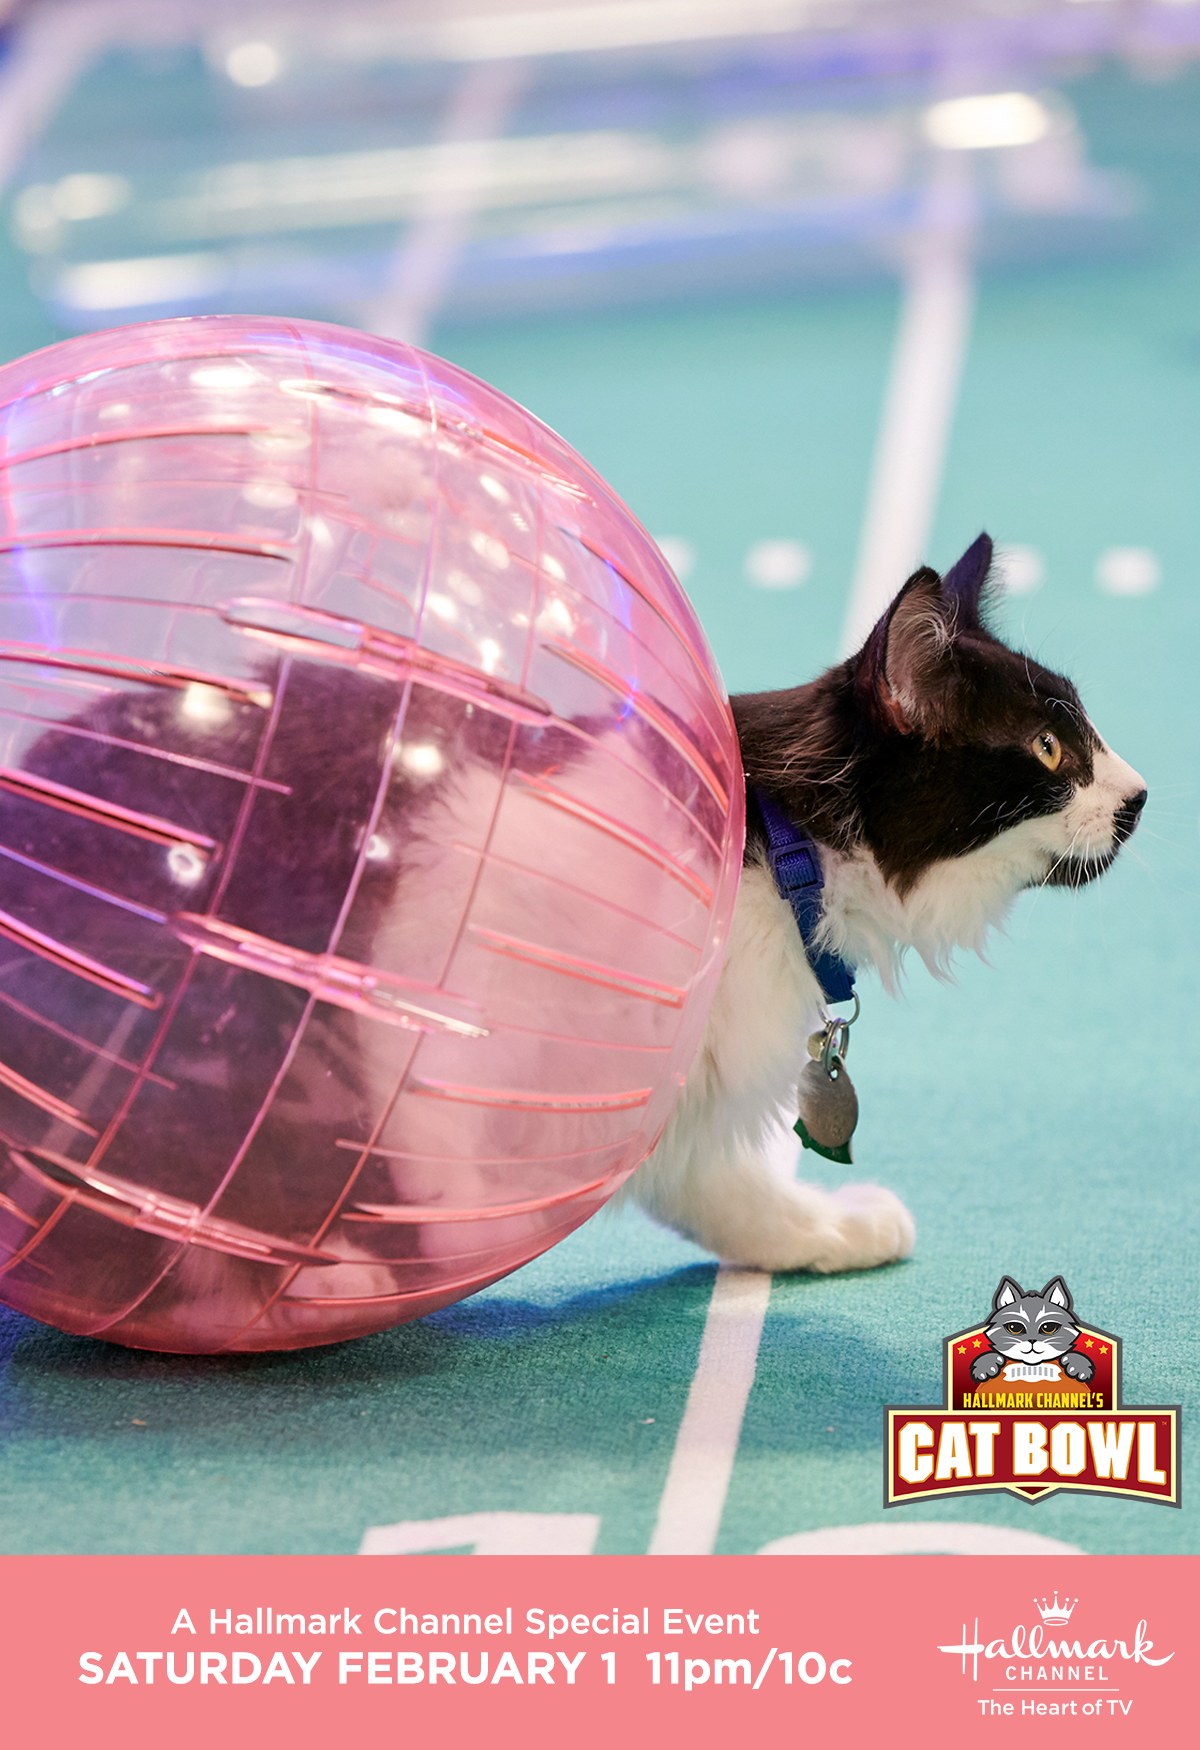 It S An Adoption Ever After Weekend As We Get The Ball Rollin With Cat Bowl Ii On February 1 Only On Hallmark Channel Catbowl In 2020 Cat Bowls Kitten Bowls Kitten